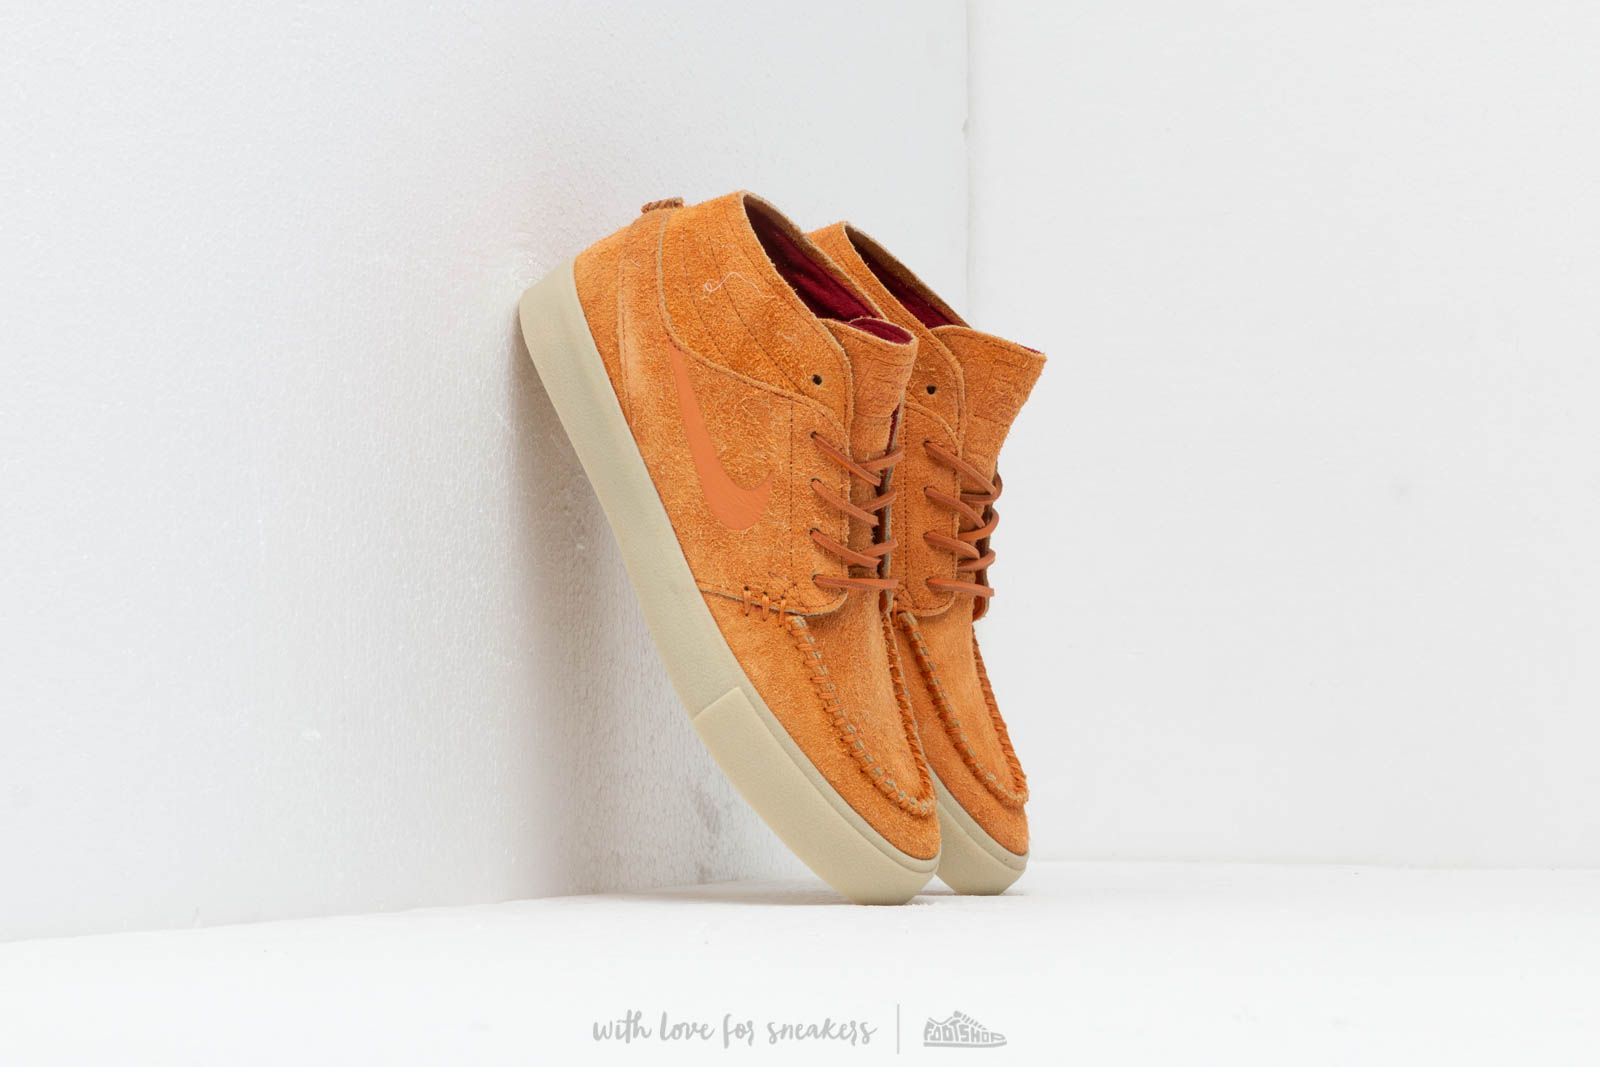 af7dd10594c7 Nike SB Zoom Janoski Mid Rm Crafted Cinder Orange  Cinder Orange-Team Gold  at